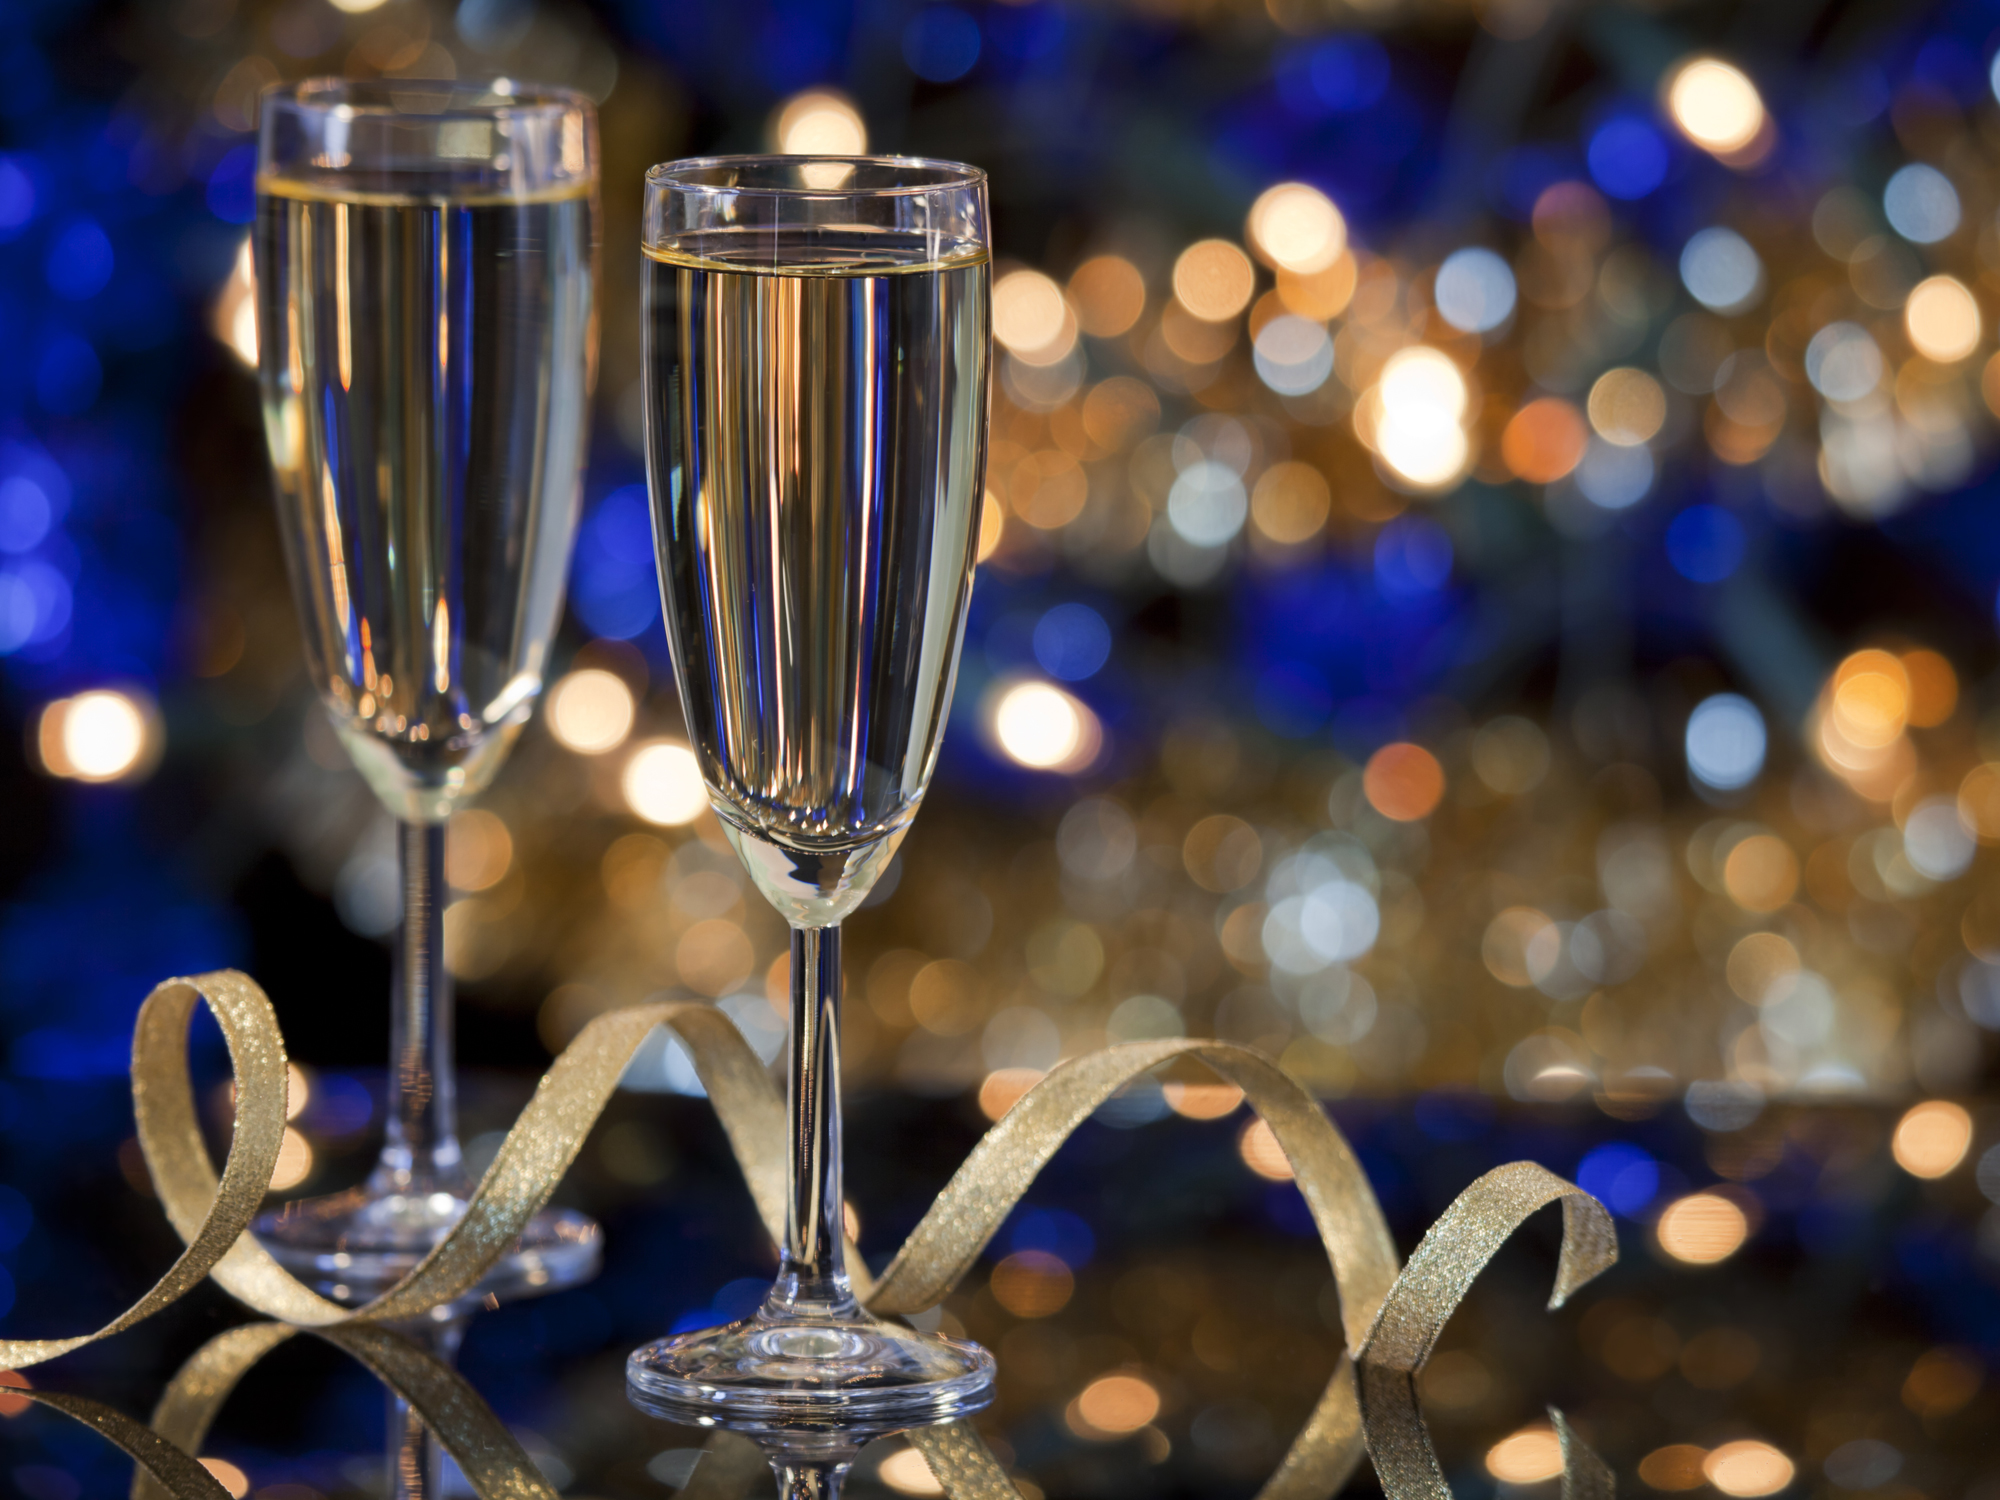 champagne glasses against blue and gold background